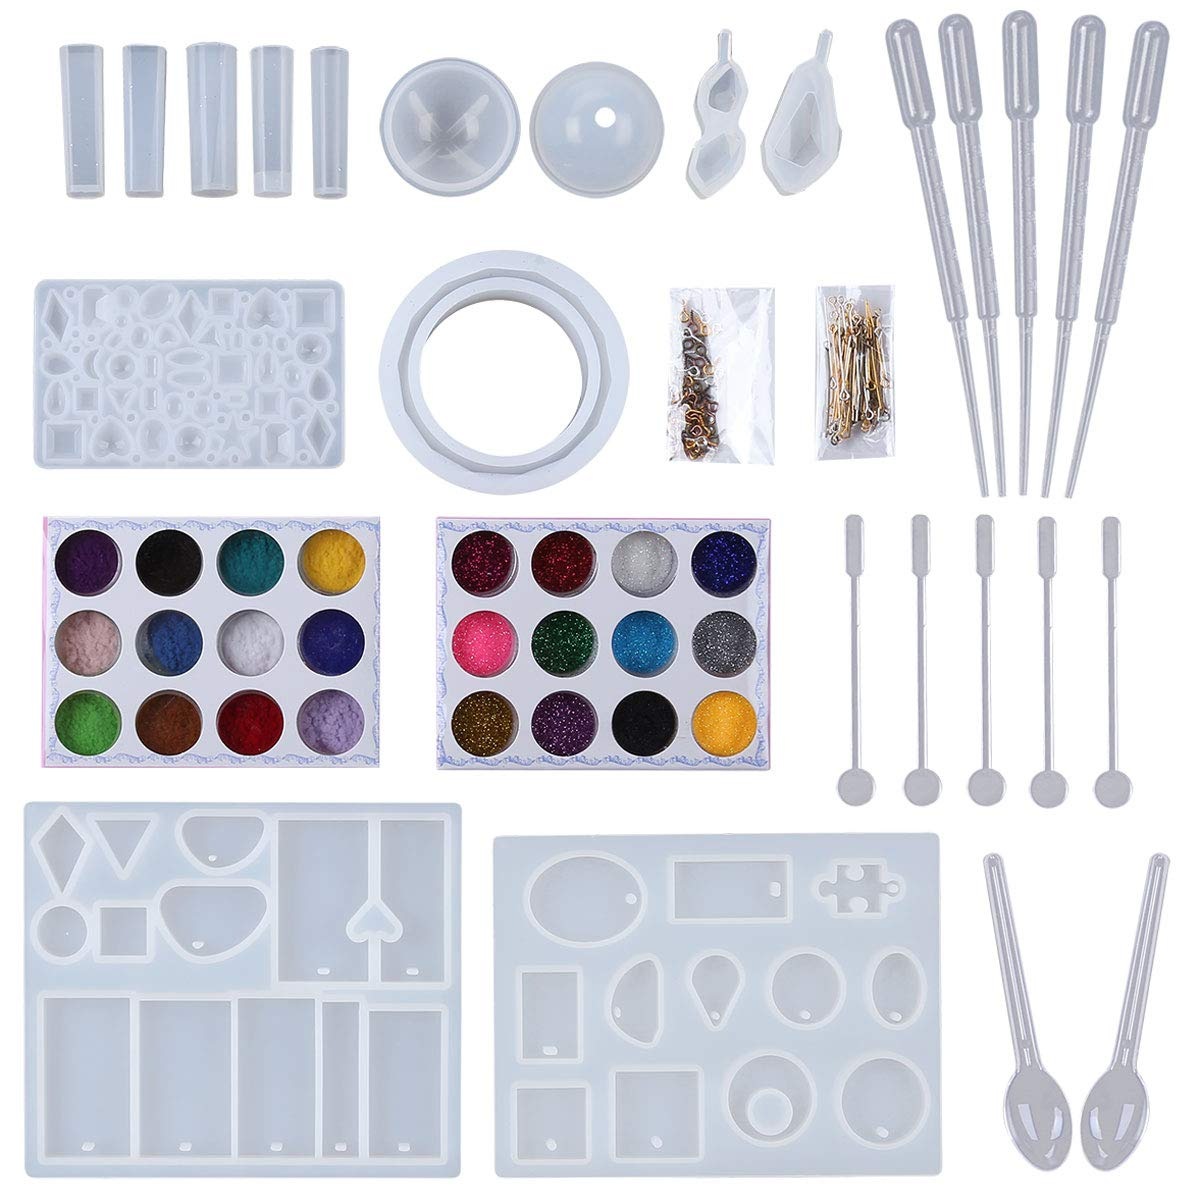 8 Pack Jewelry Resin Casting Molds Styles Pendant Silicone Mold for DIY Jewelry Craft Making, Come with 120 PCS Jewelry Screw Open Eye Pins Dropper Plastic Spoon Nail Art Glitter Powder Tbestmax